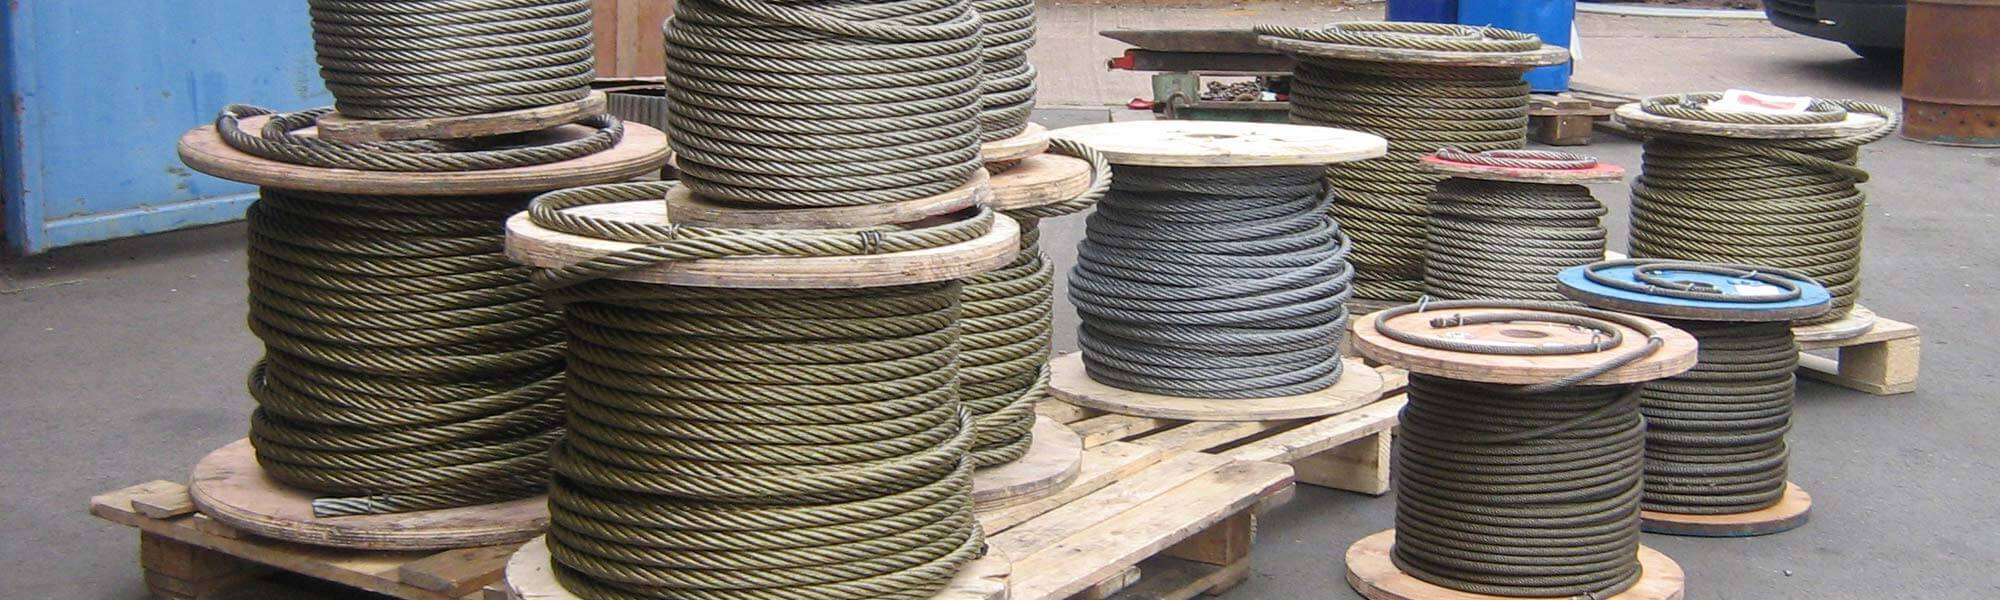 Wire Rope Suppliers | Shop Online | Stainless Steel Rope | RSD